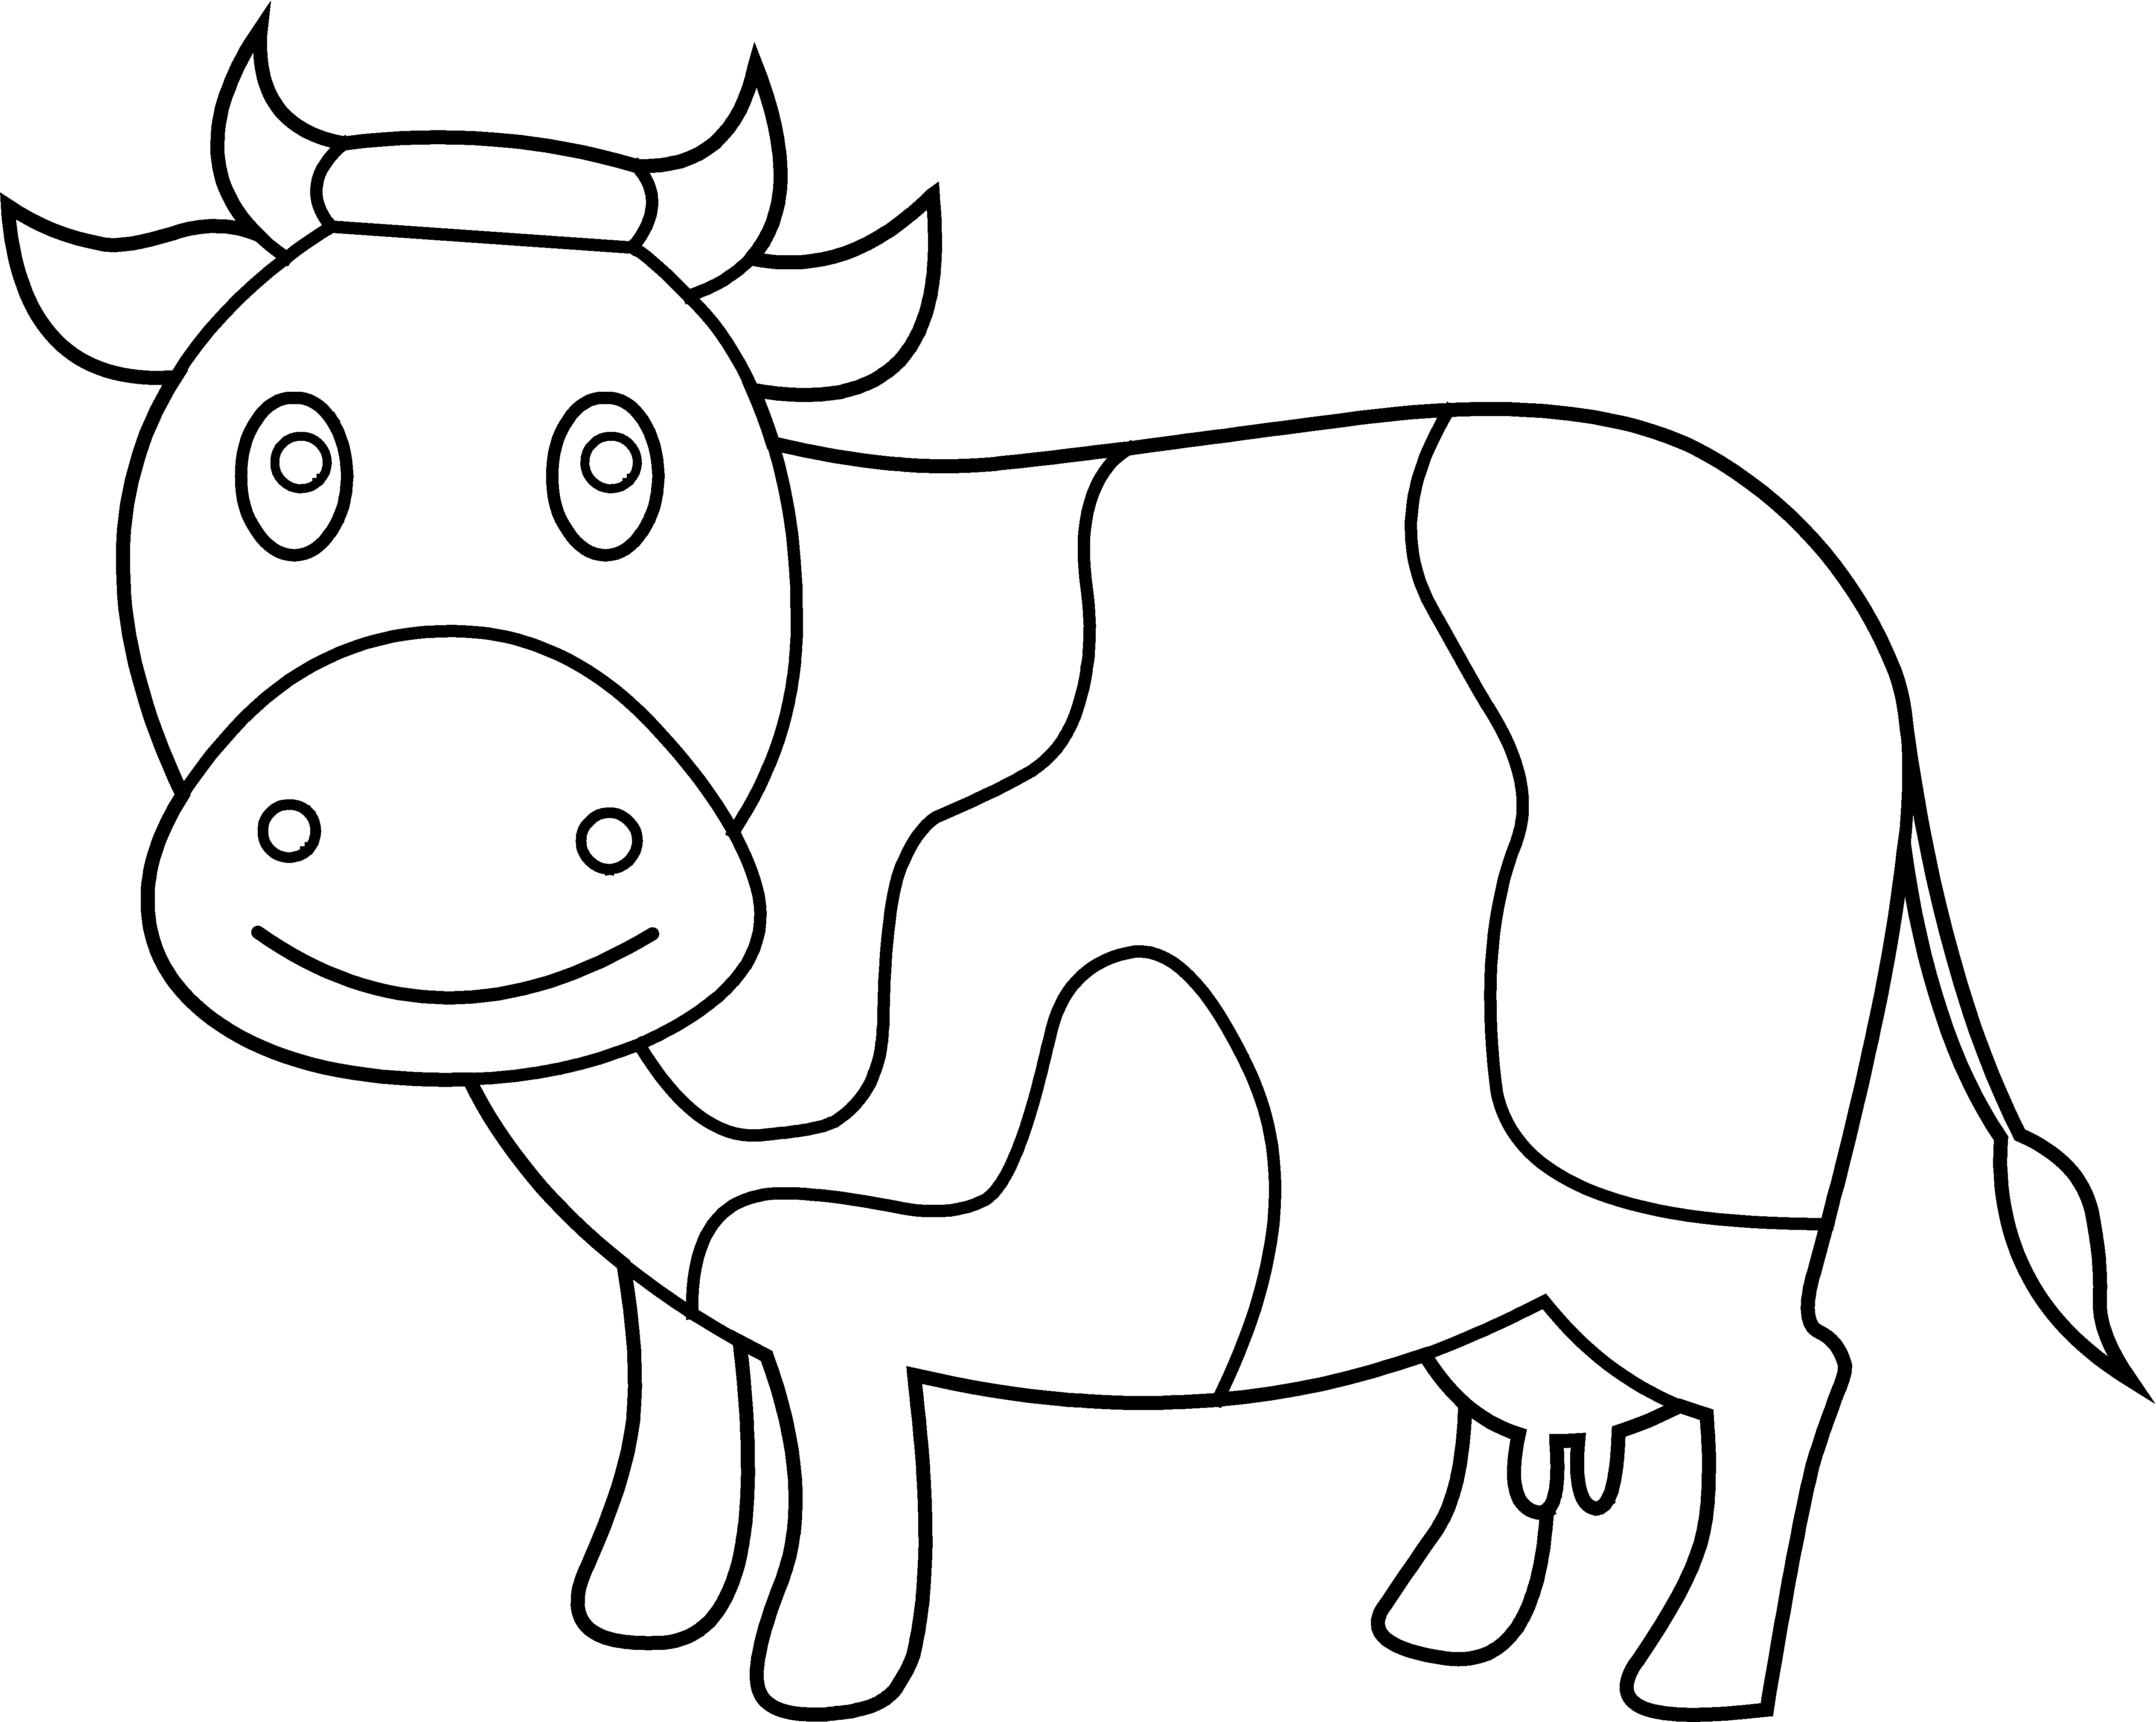 Coloring page free clip. Cow clipart cute